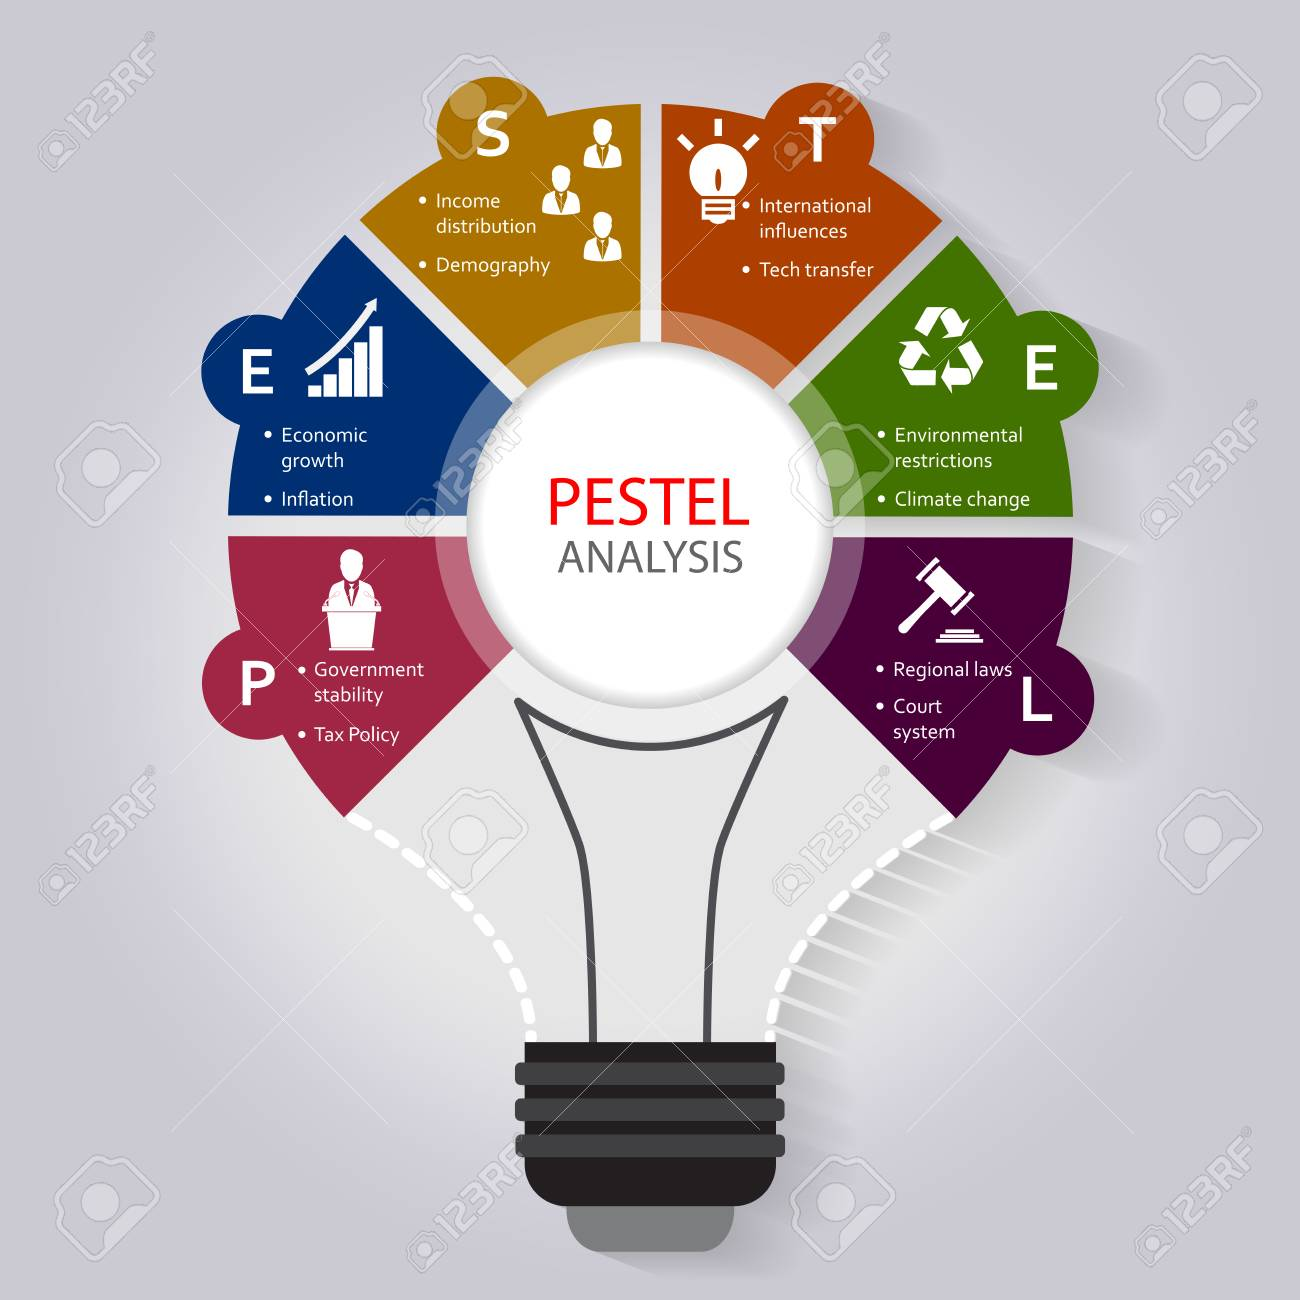 PESTEL analysis infographic template with political, economic, social, Technological, legal and environmental factor icons included - 74477900